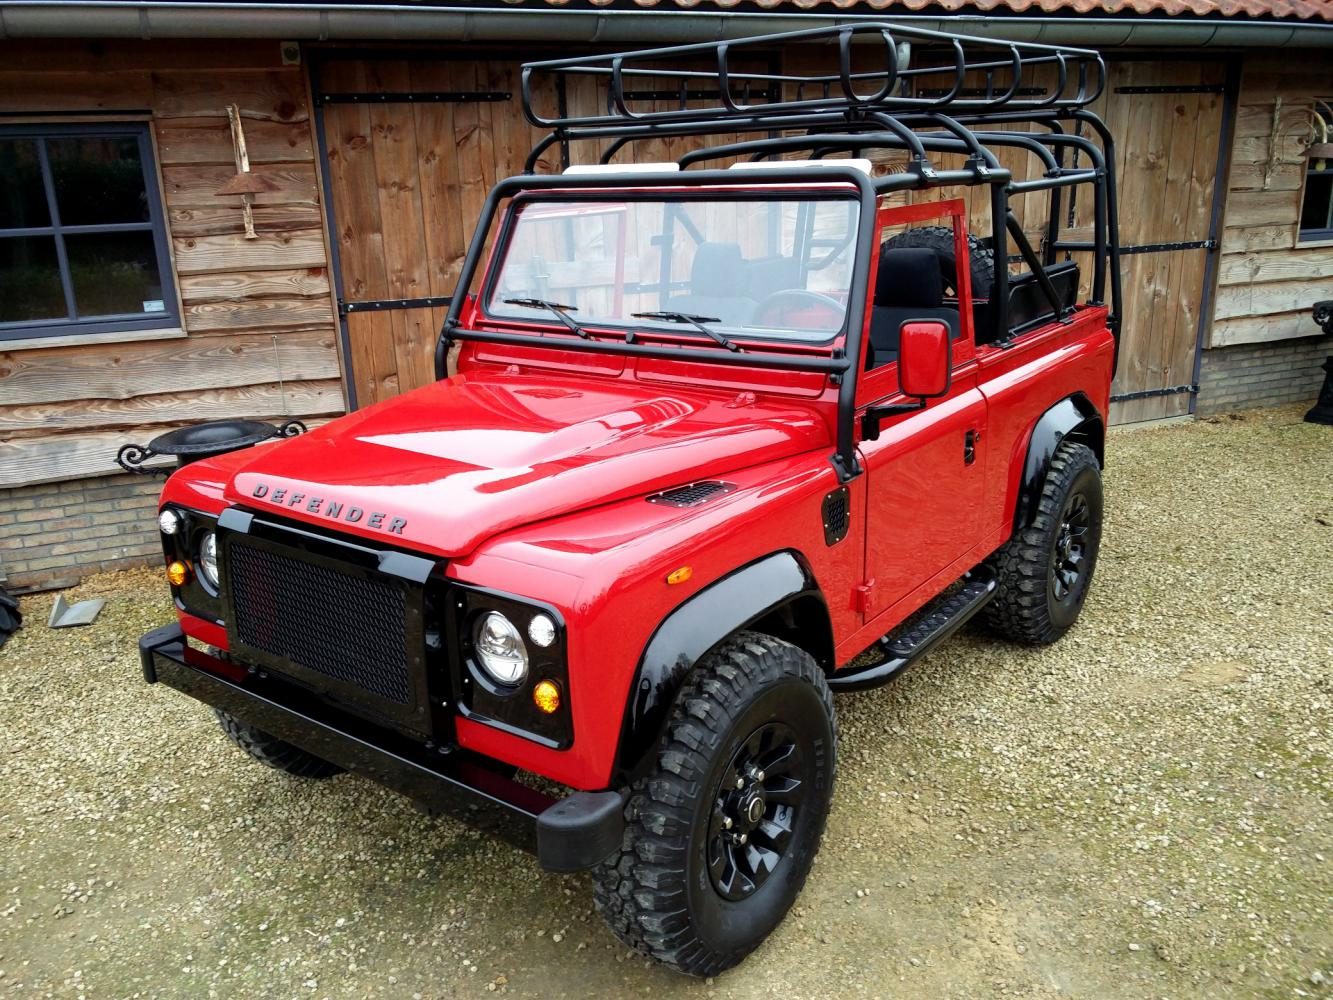 Click image for larger version  Name:1992 LR LHD Defender 90 Red 200 Tdi A day 15 left front top.jpg Views:53 Size:285.4 KB ID:323721